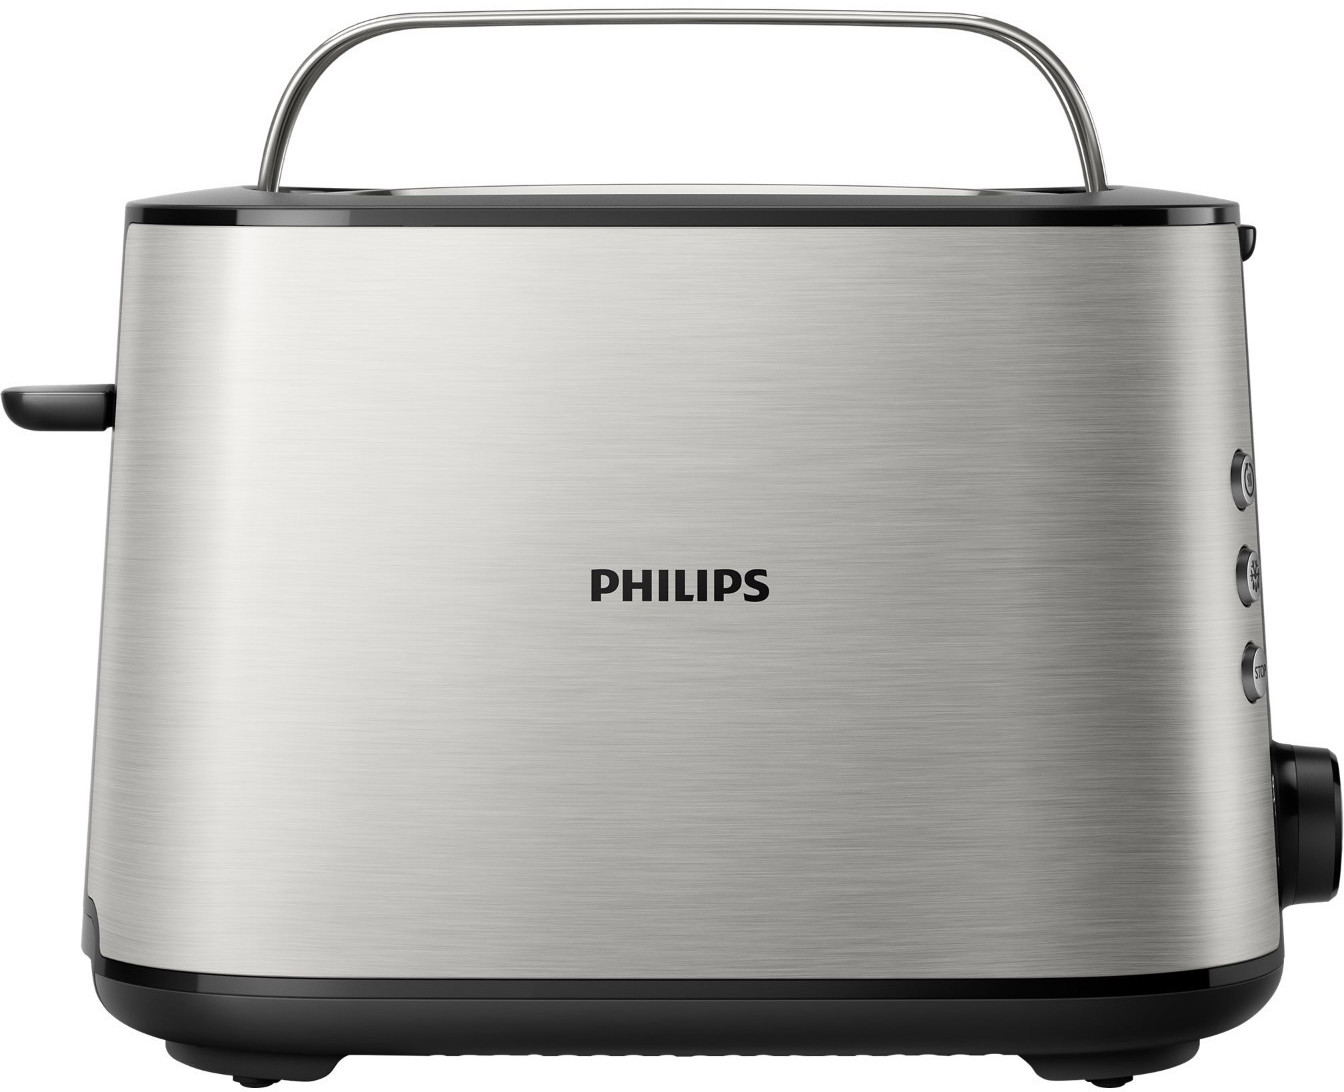 Image of Philips Viva Collection HD2650/90